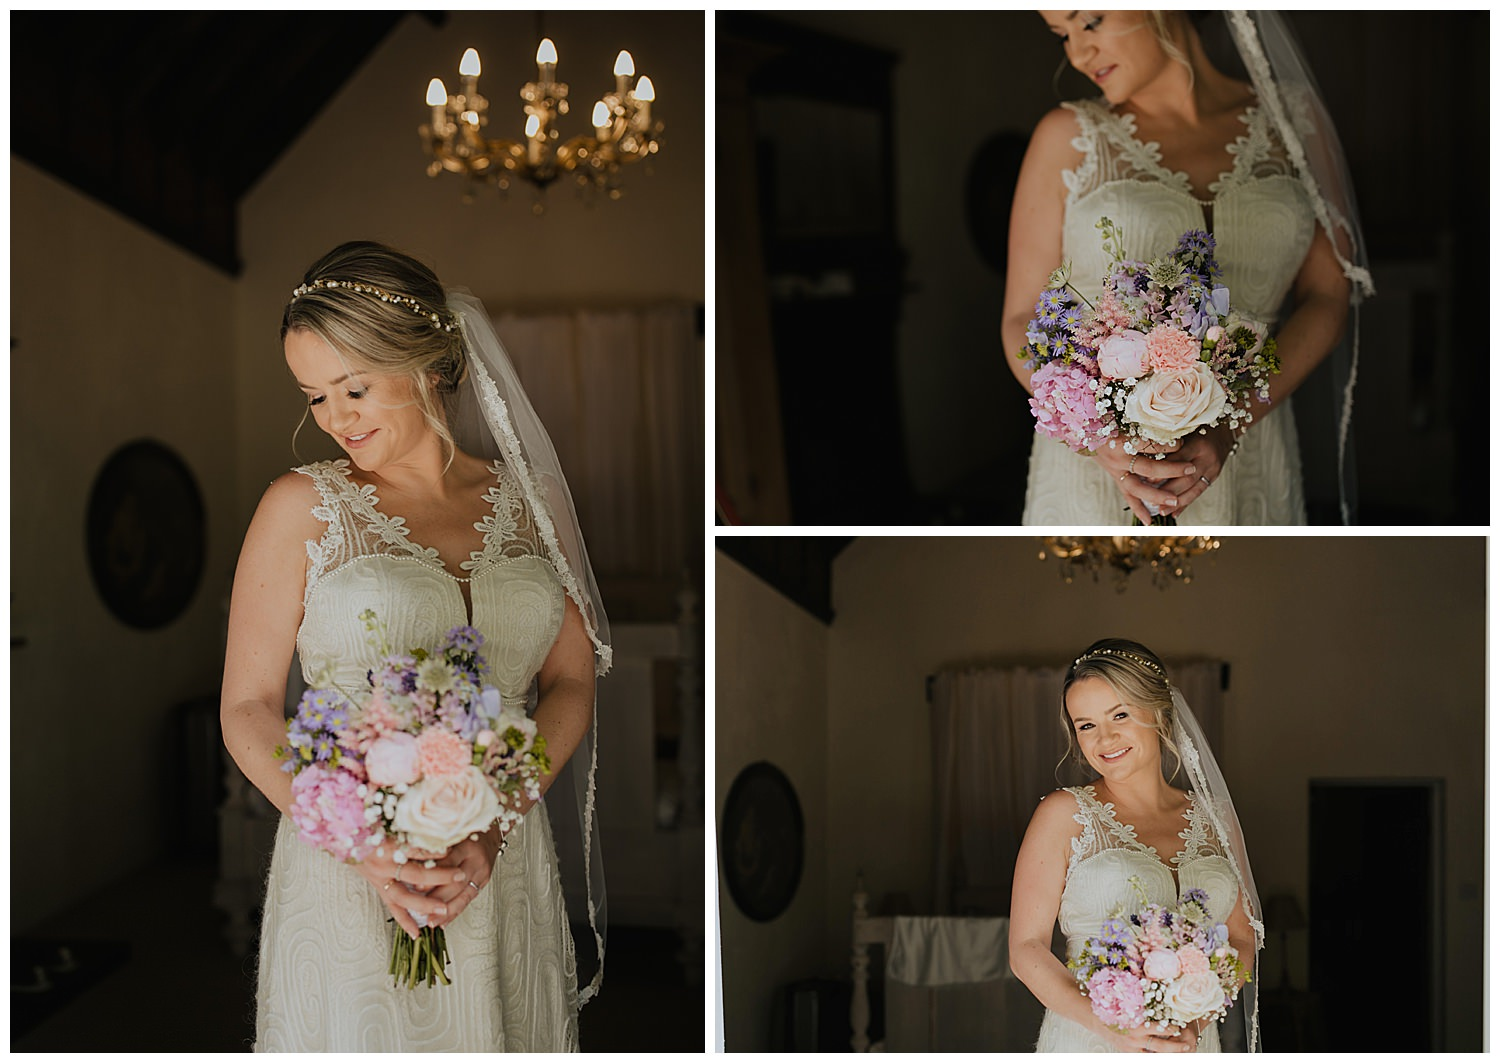 j&r_ballybeg_house_wedding_photographer_livia_figueiredo_183.jpg